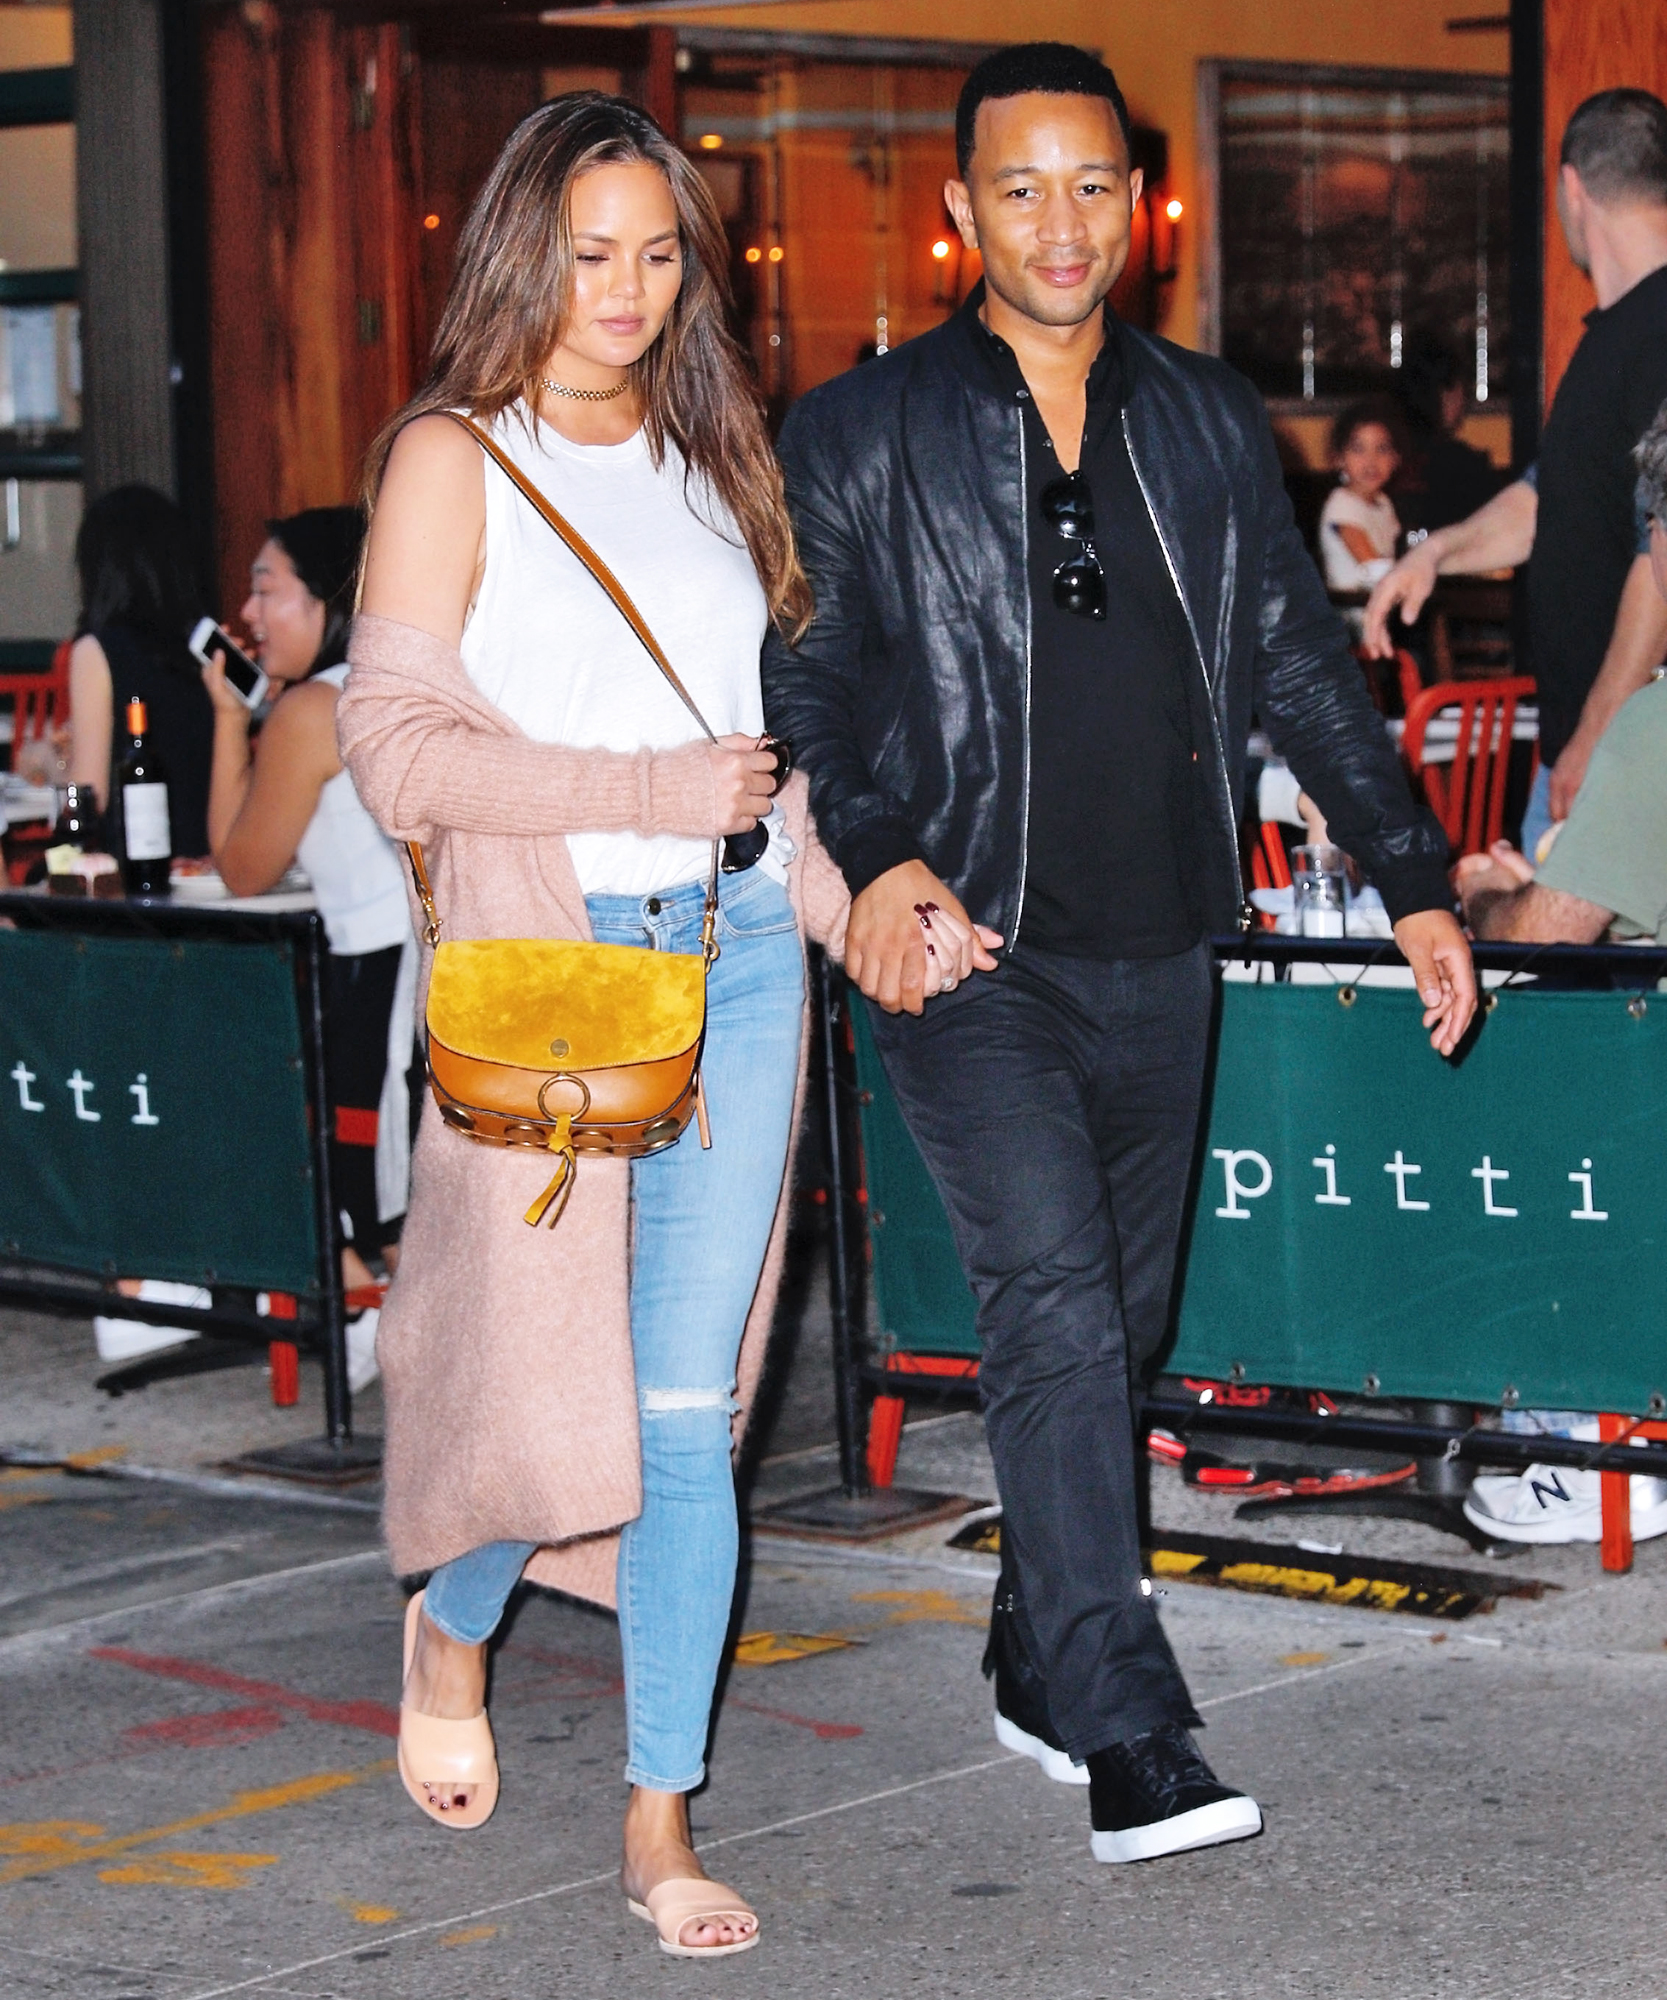 Chrissy Teigen John Legend Date Night 10/17 - Lead 2016